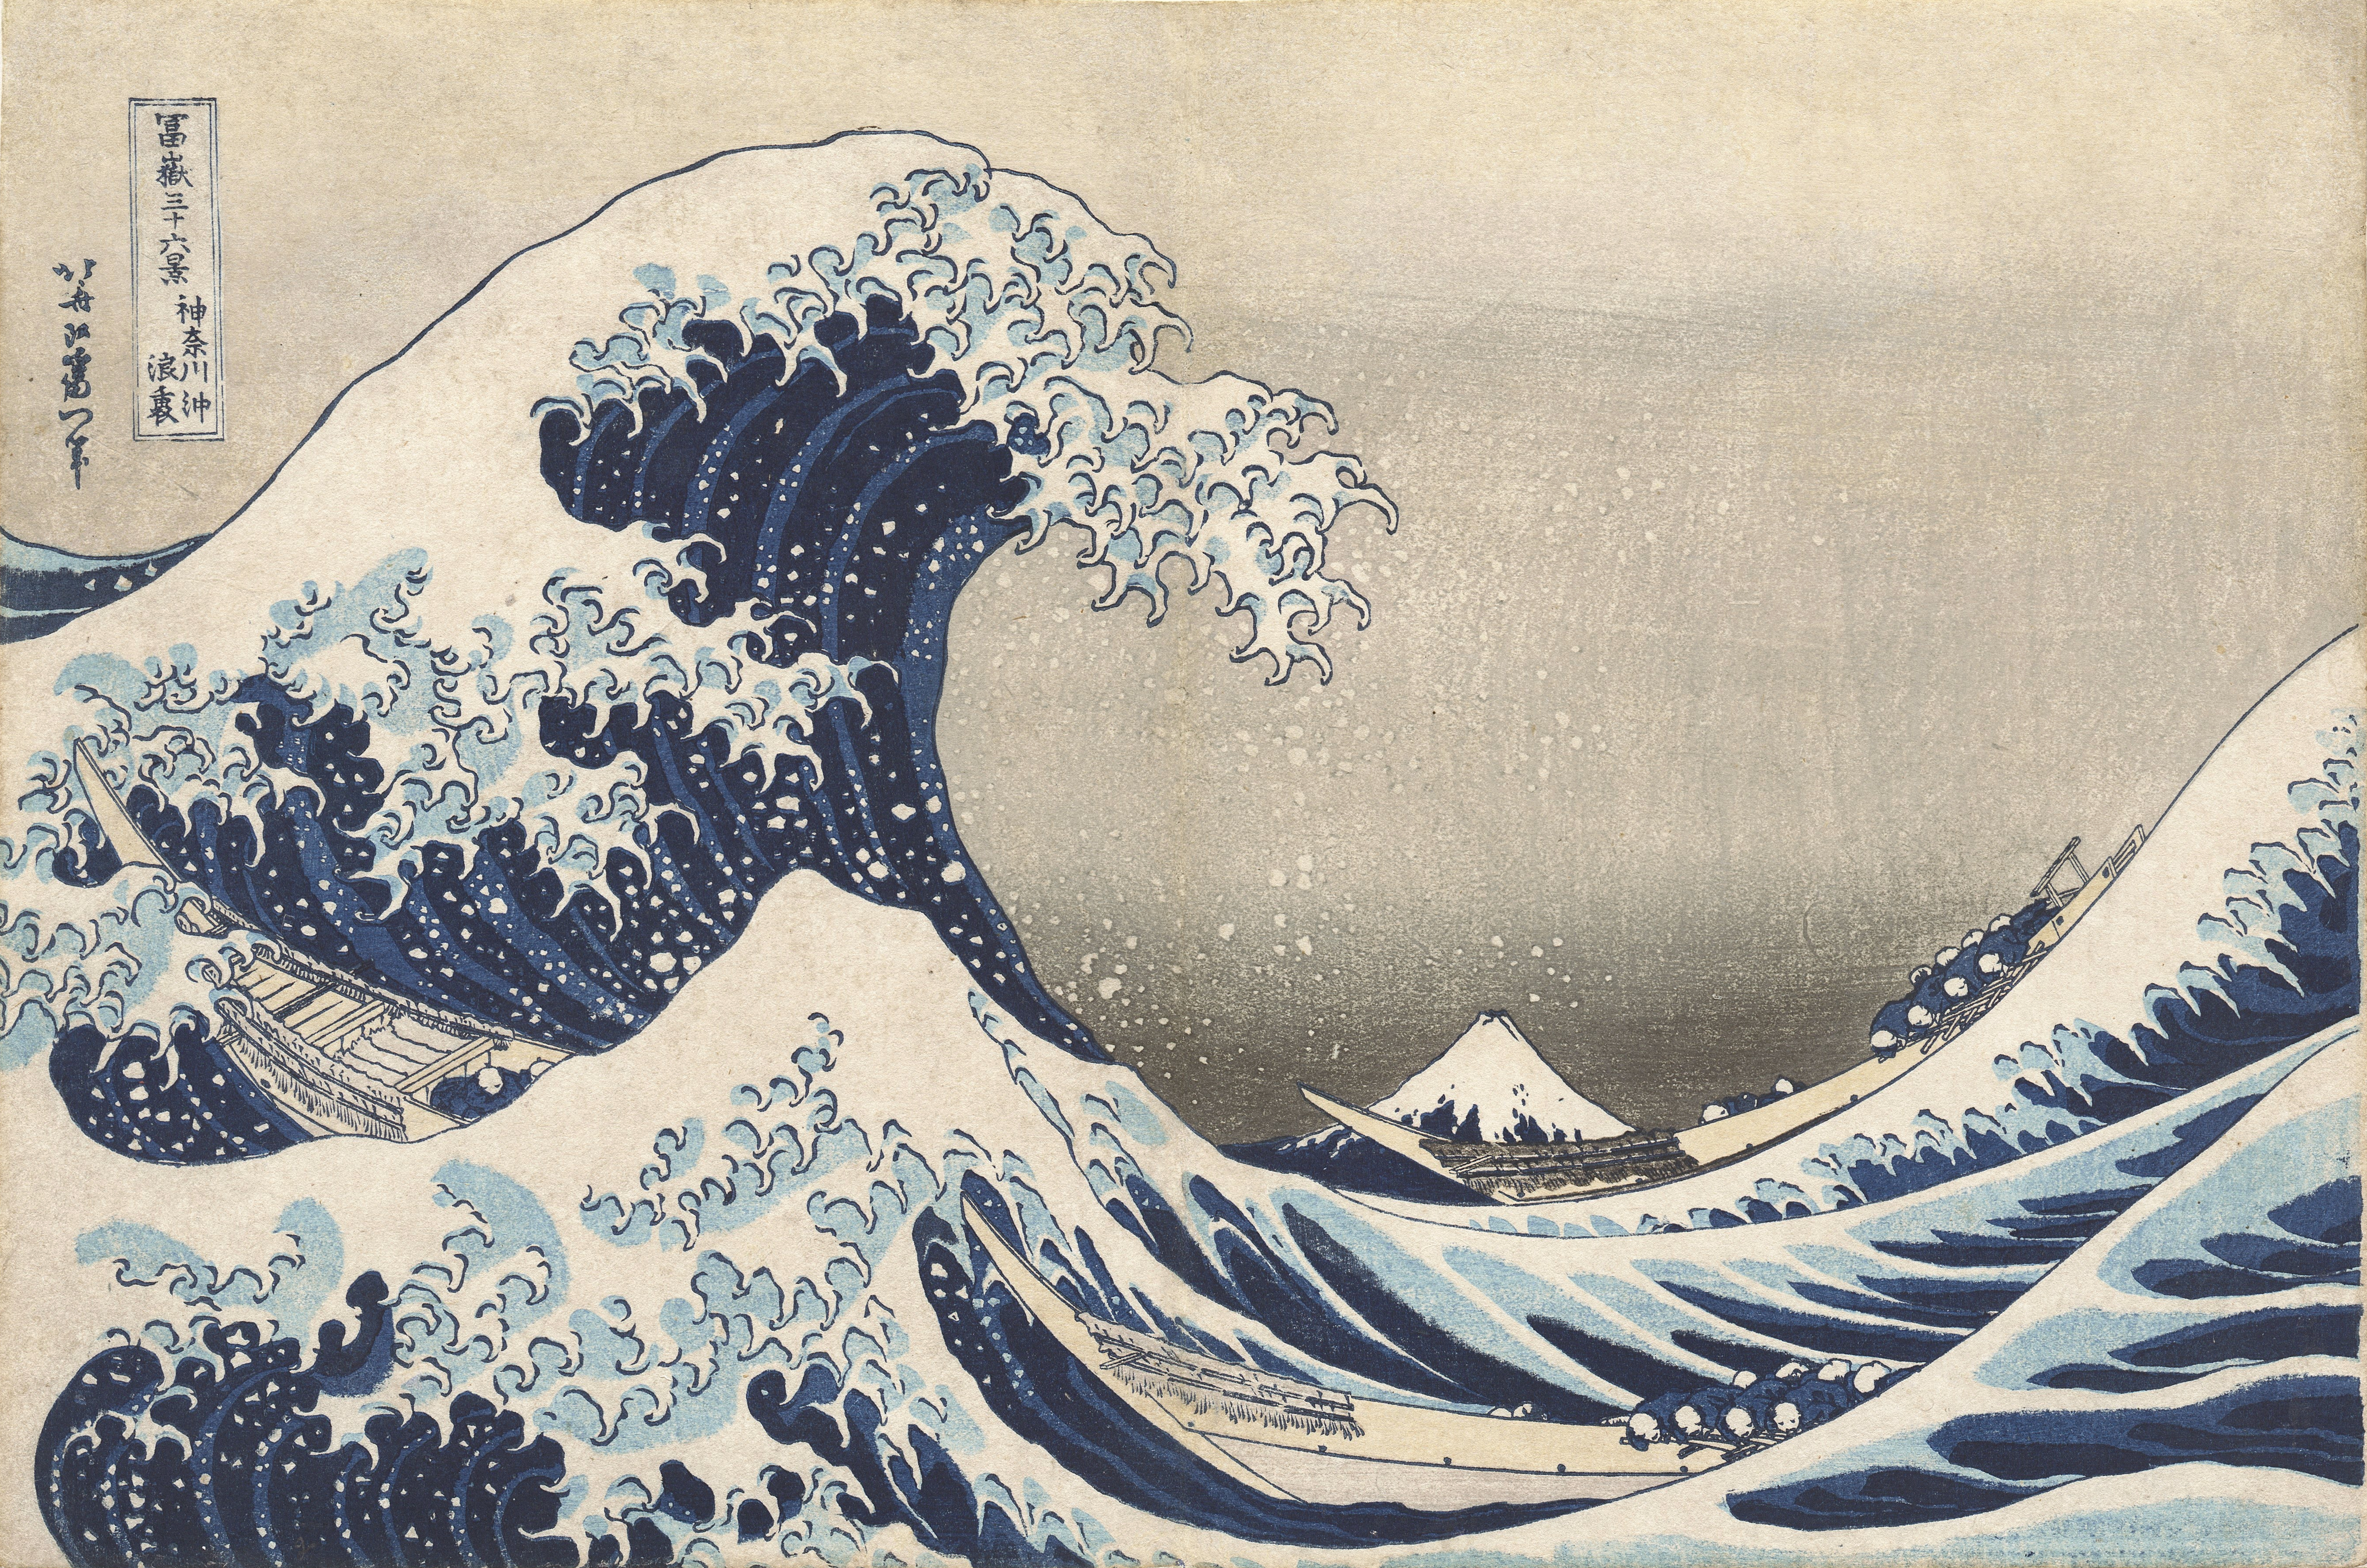 Ukiyo-e. The Great Wave off Kanagawa